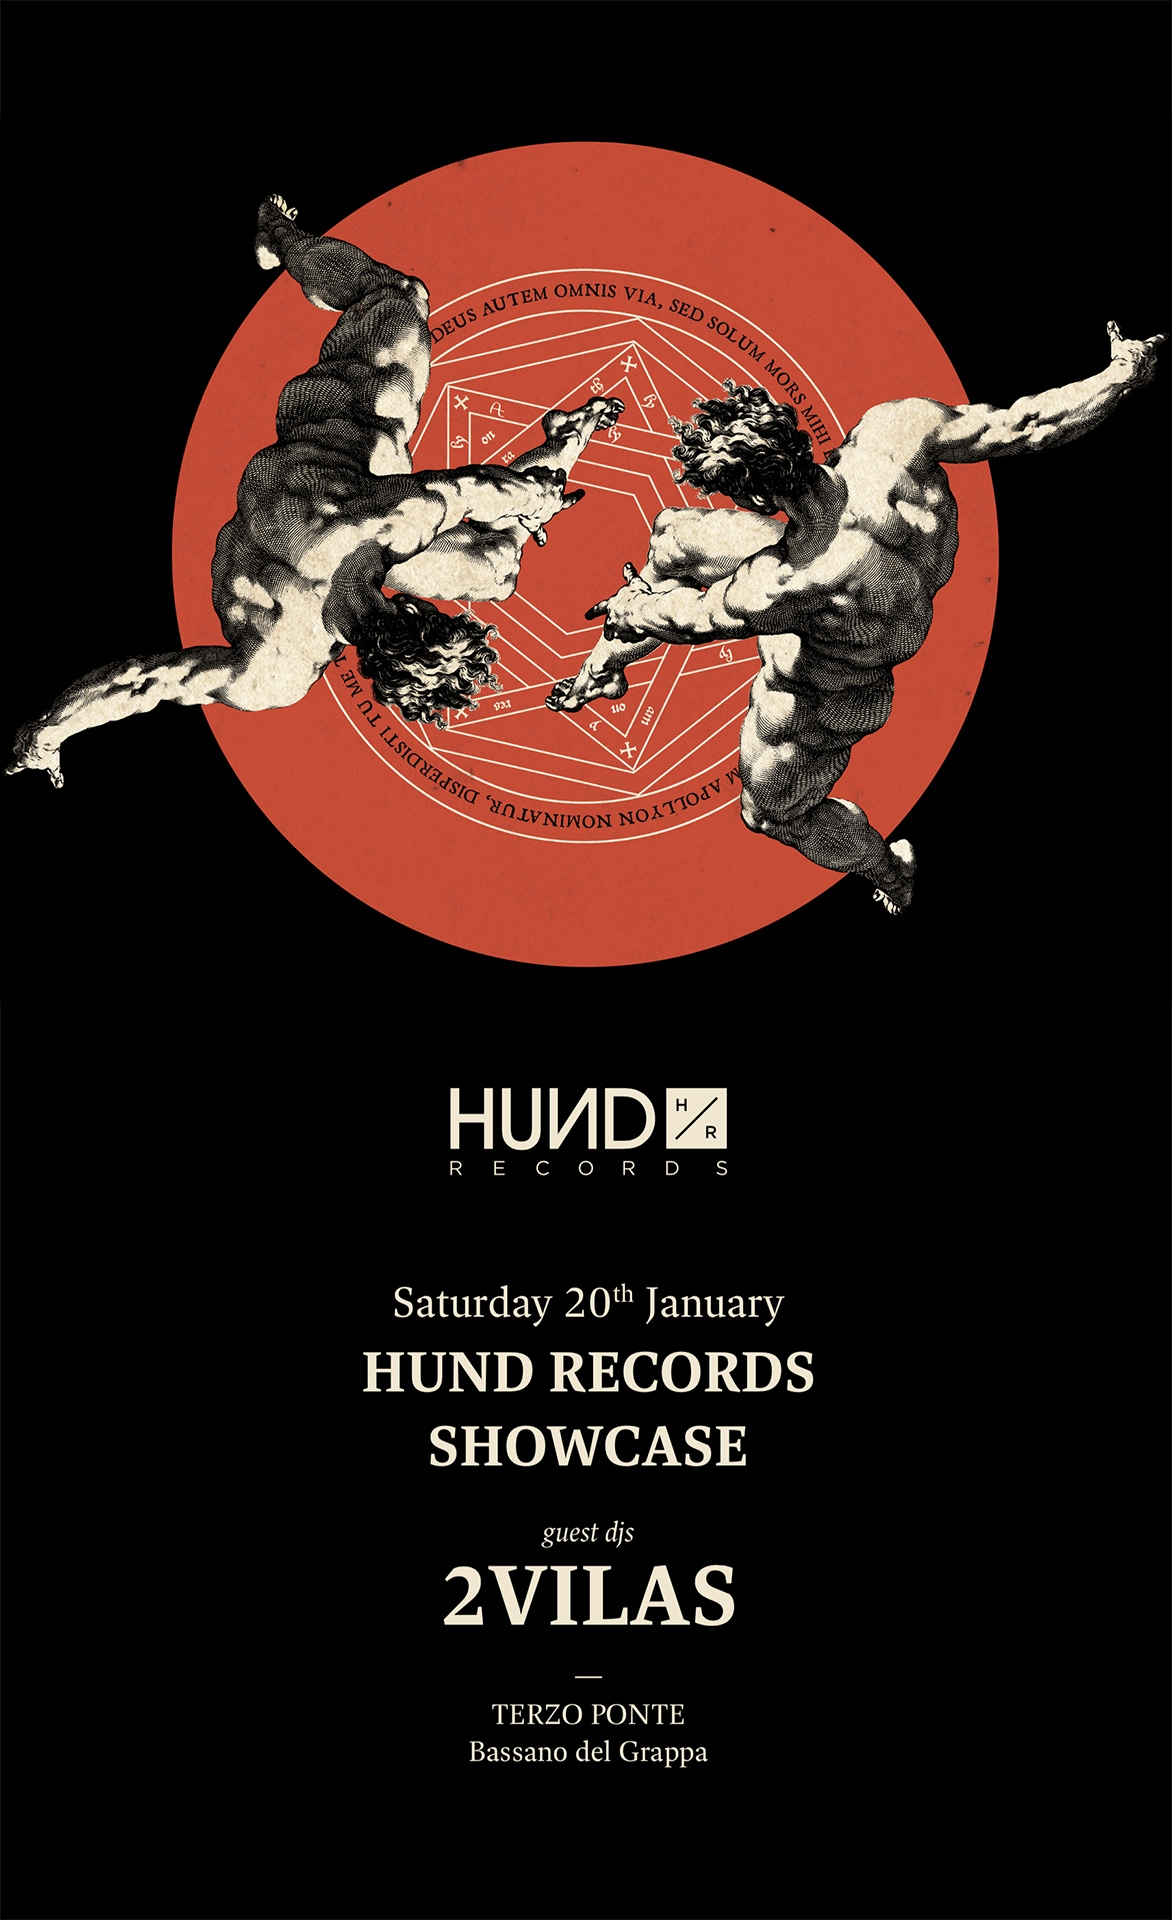 hund-records-showcase-2vilas-mob